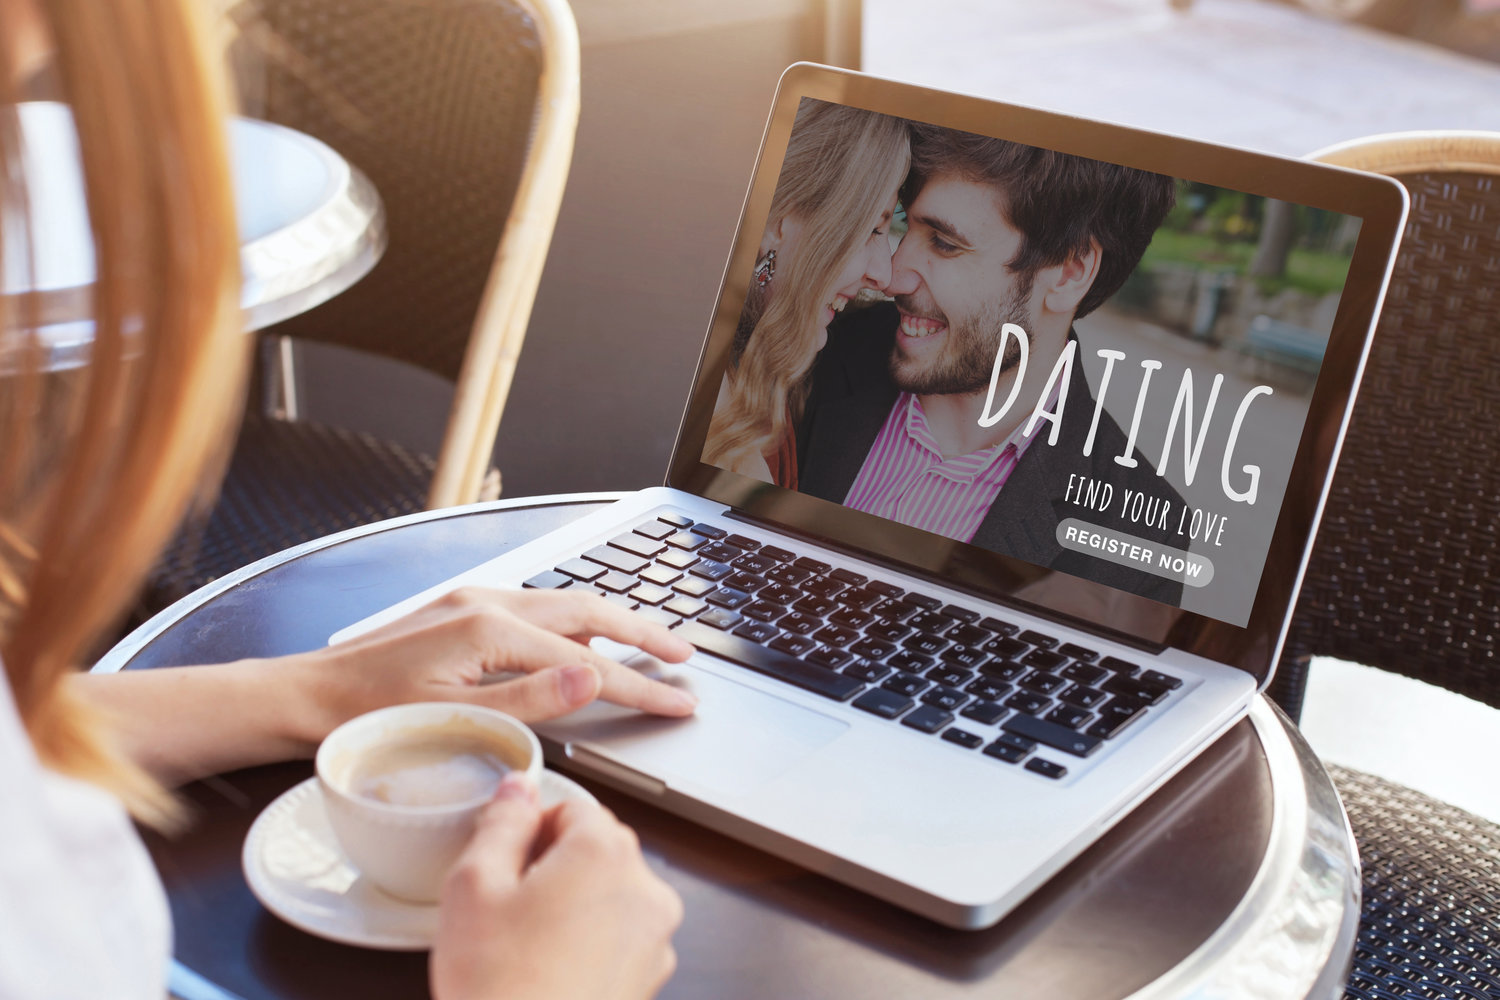 dating online, woman looking for boyfriend, find love on internet